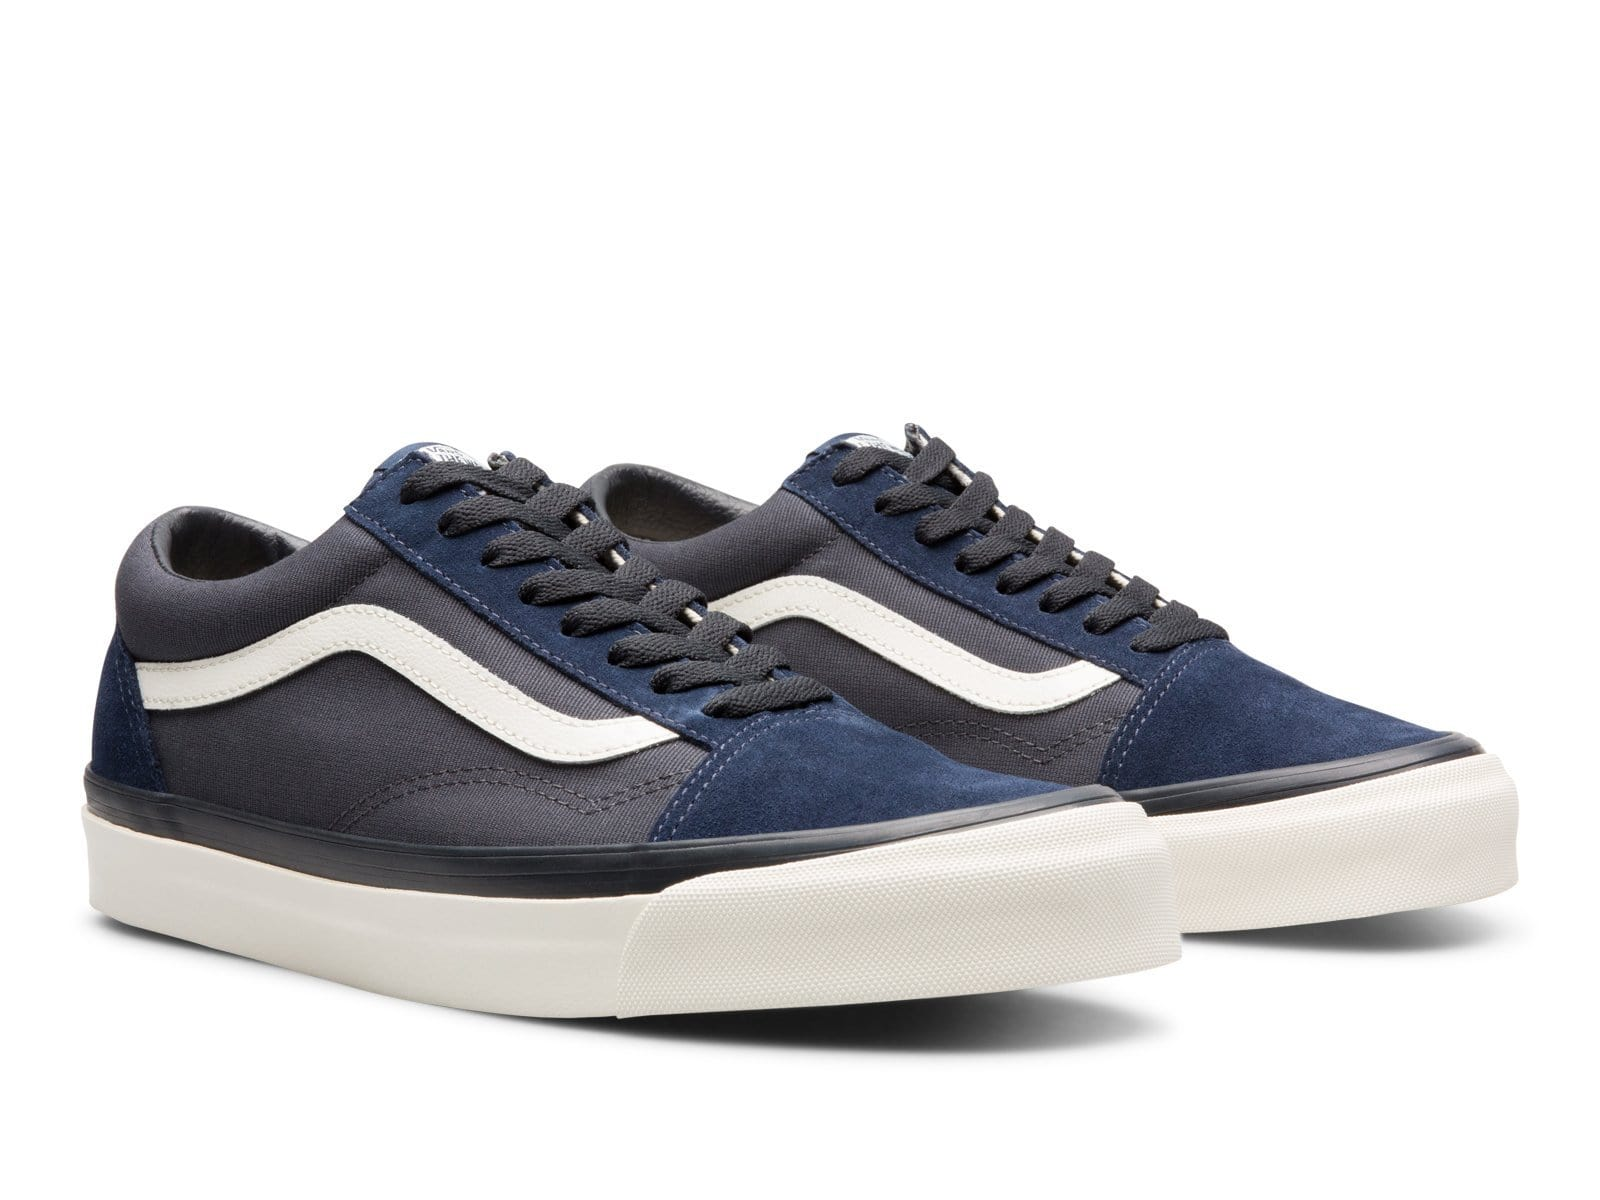 96f2b9fc9f VANS OG OLD SKOOL LX (WTAPS) DRESS BLUES 8 VN0A36C8U9X